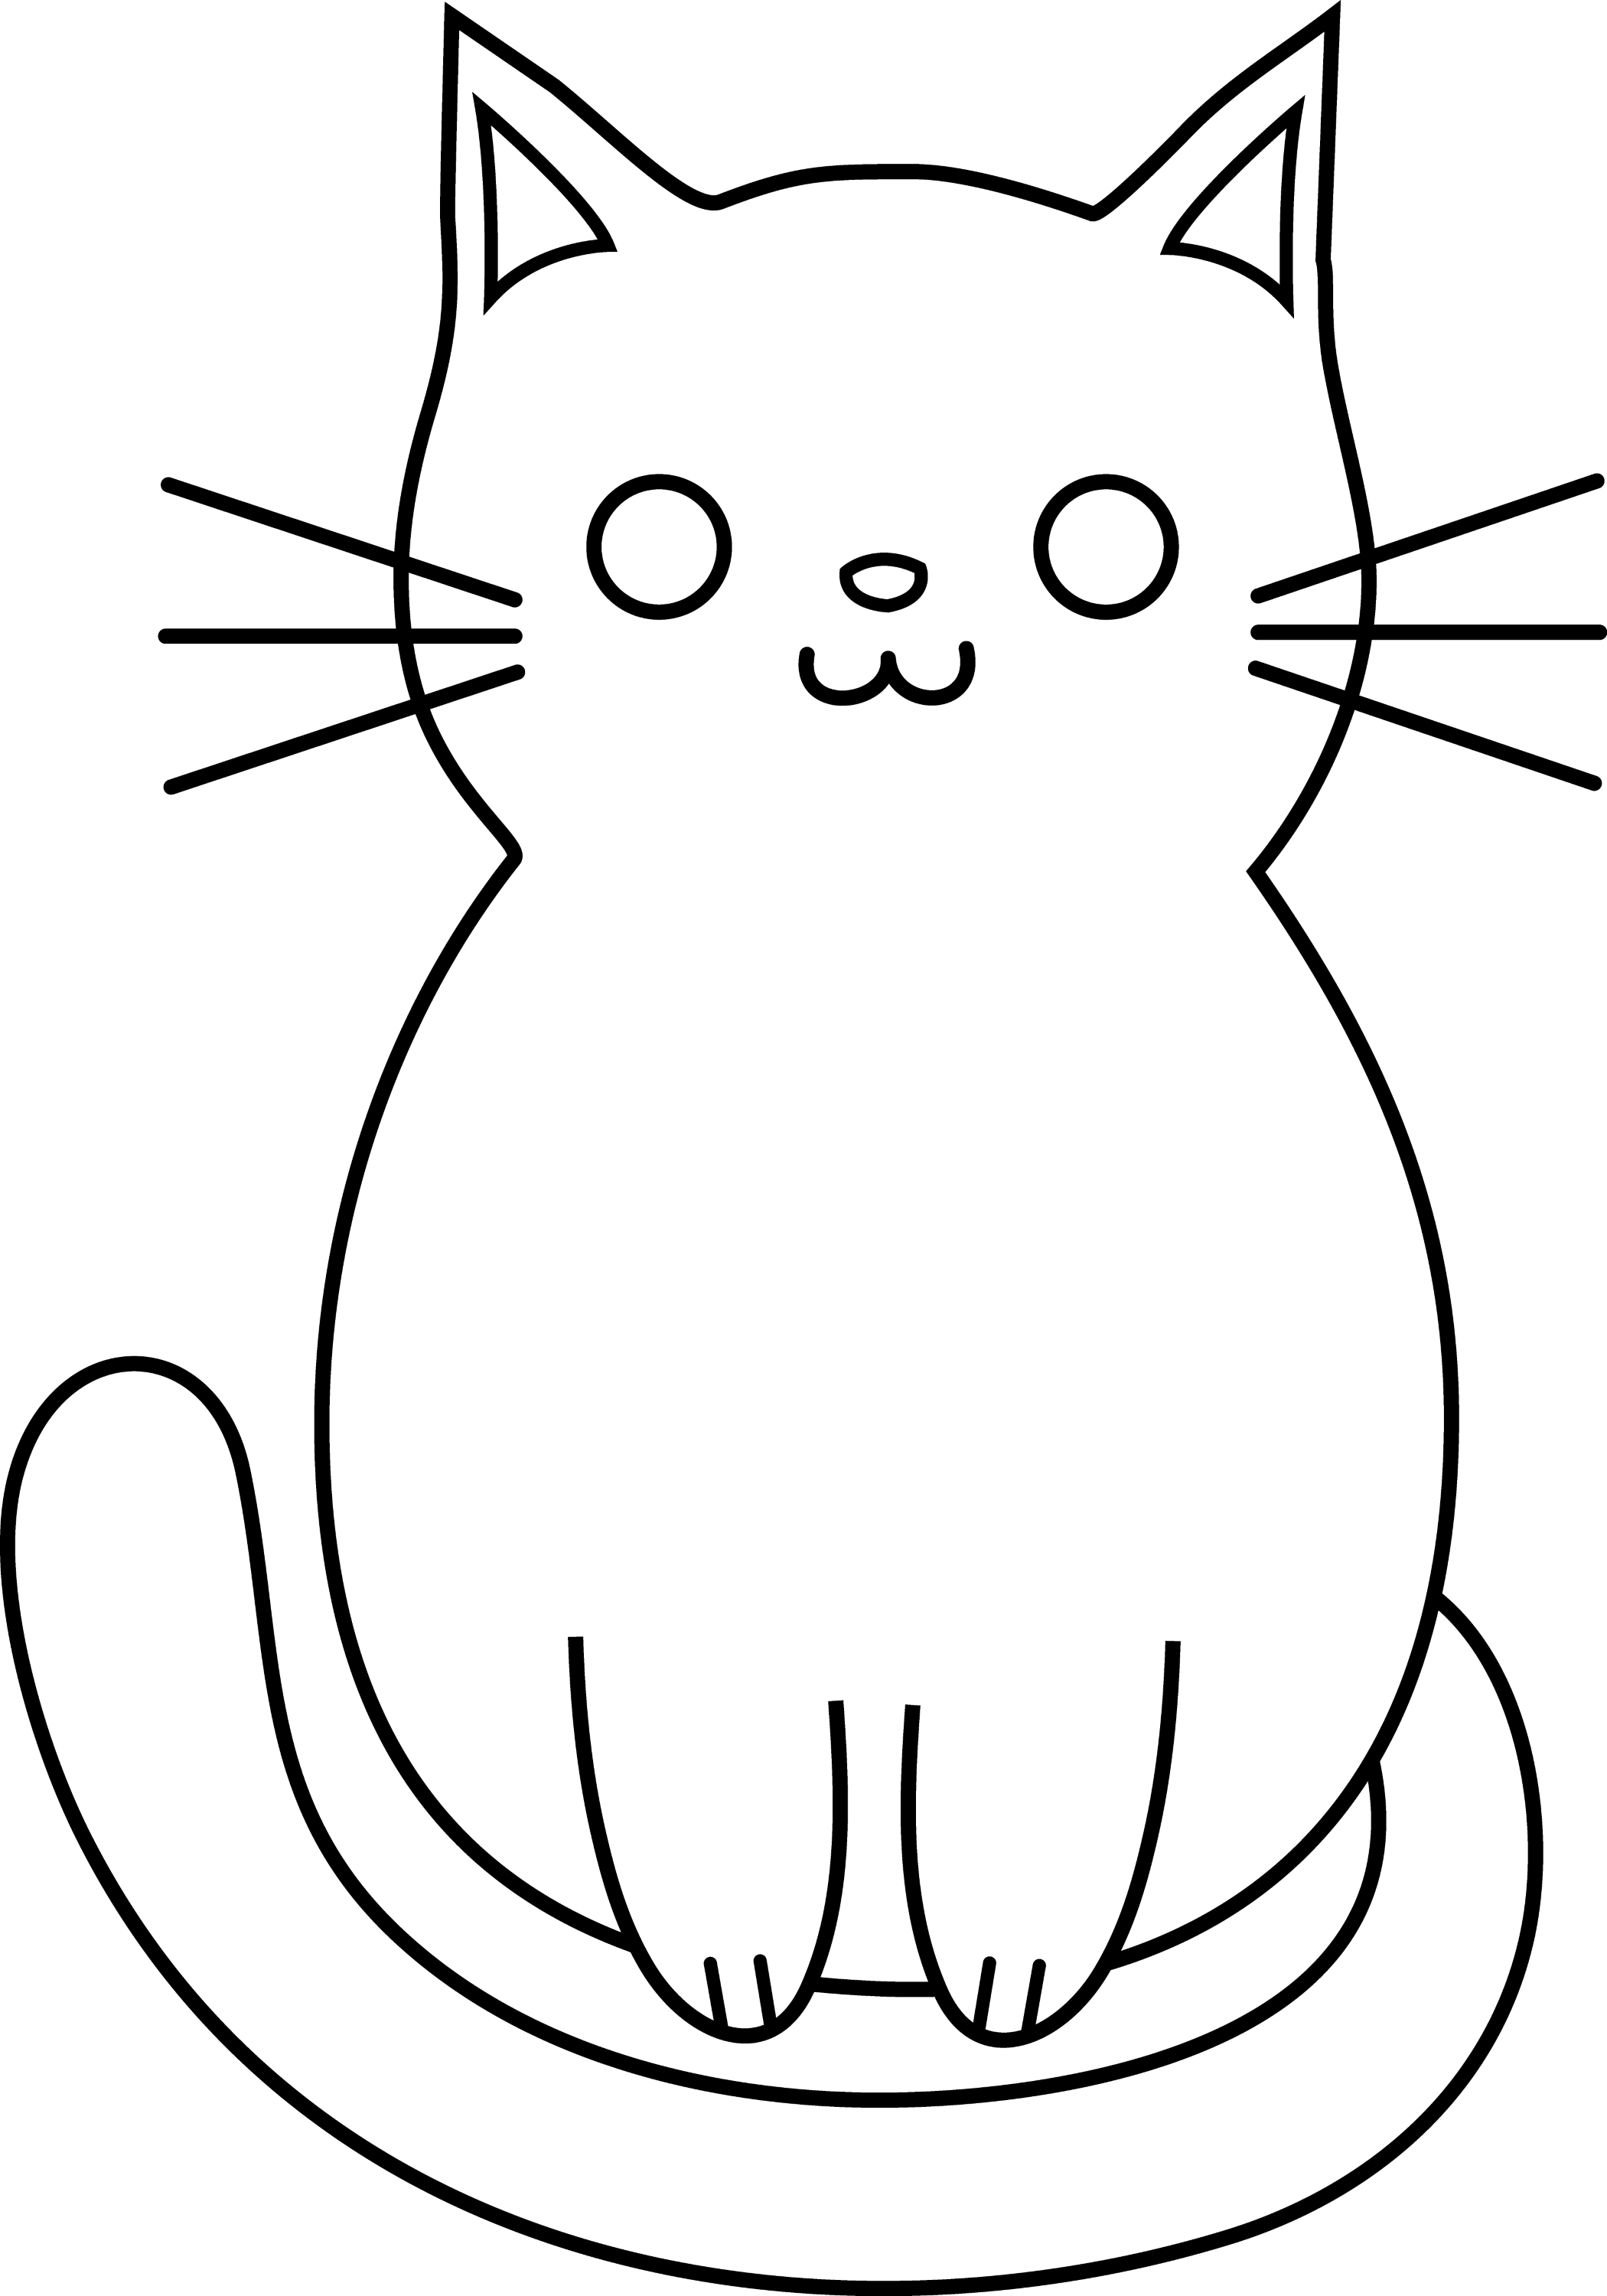 Line Drawing Kitty : Cute cat line art free clip